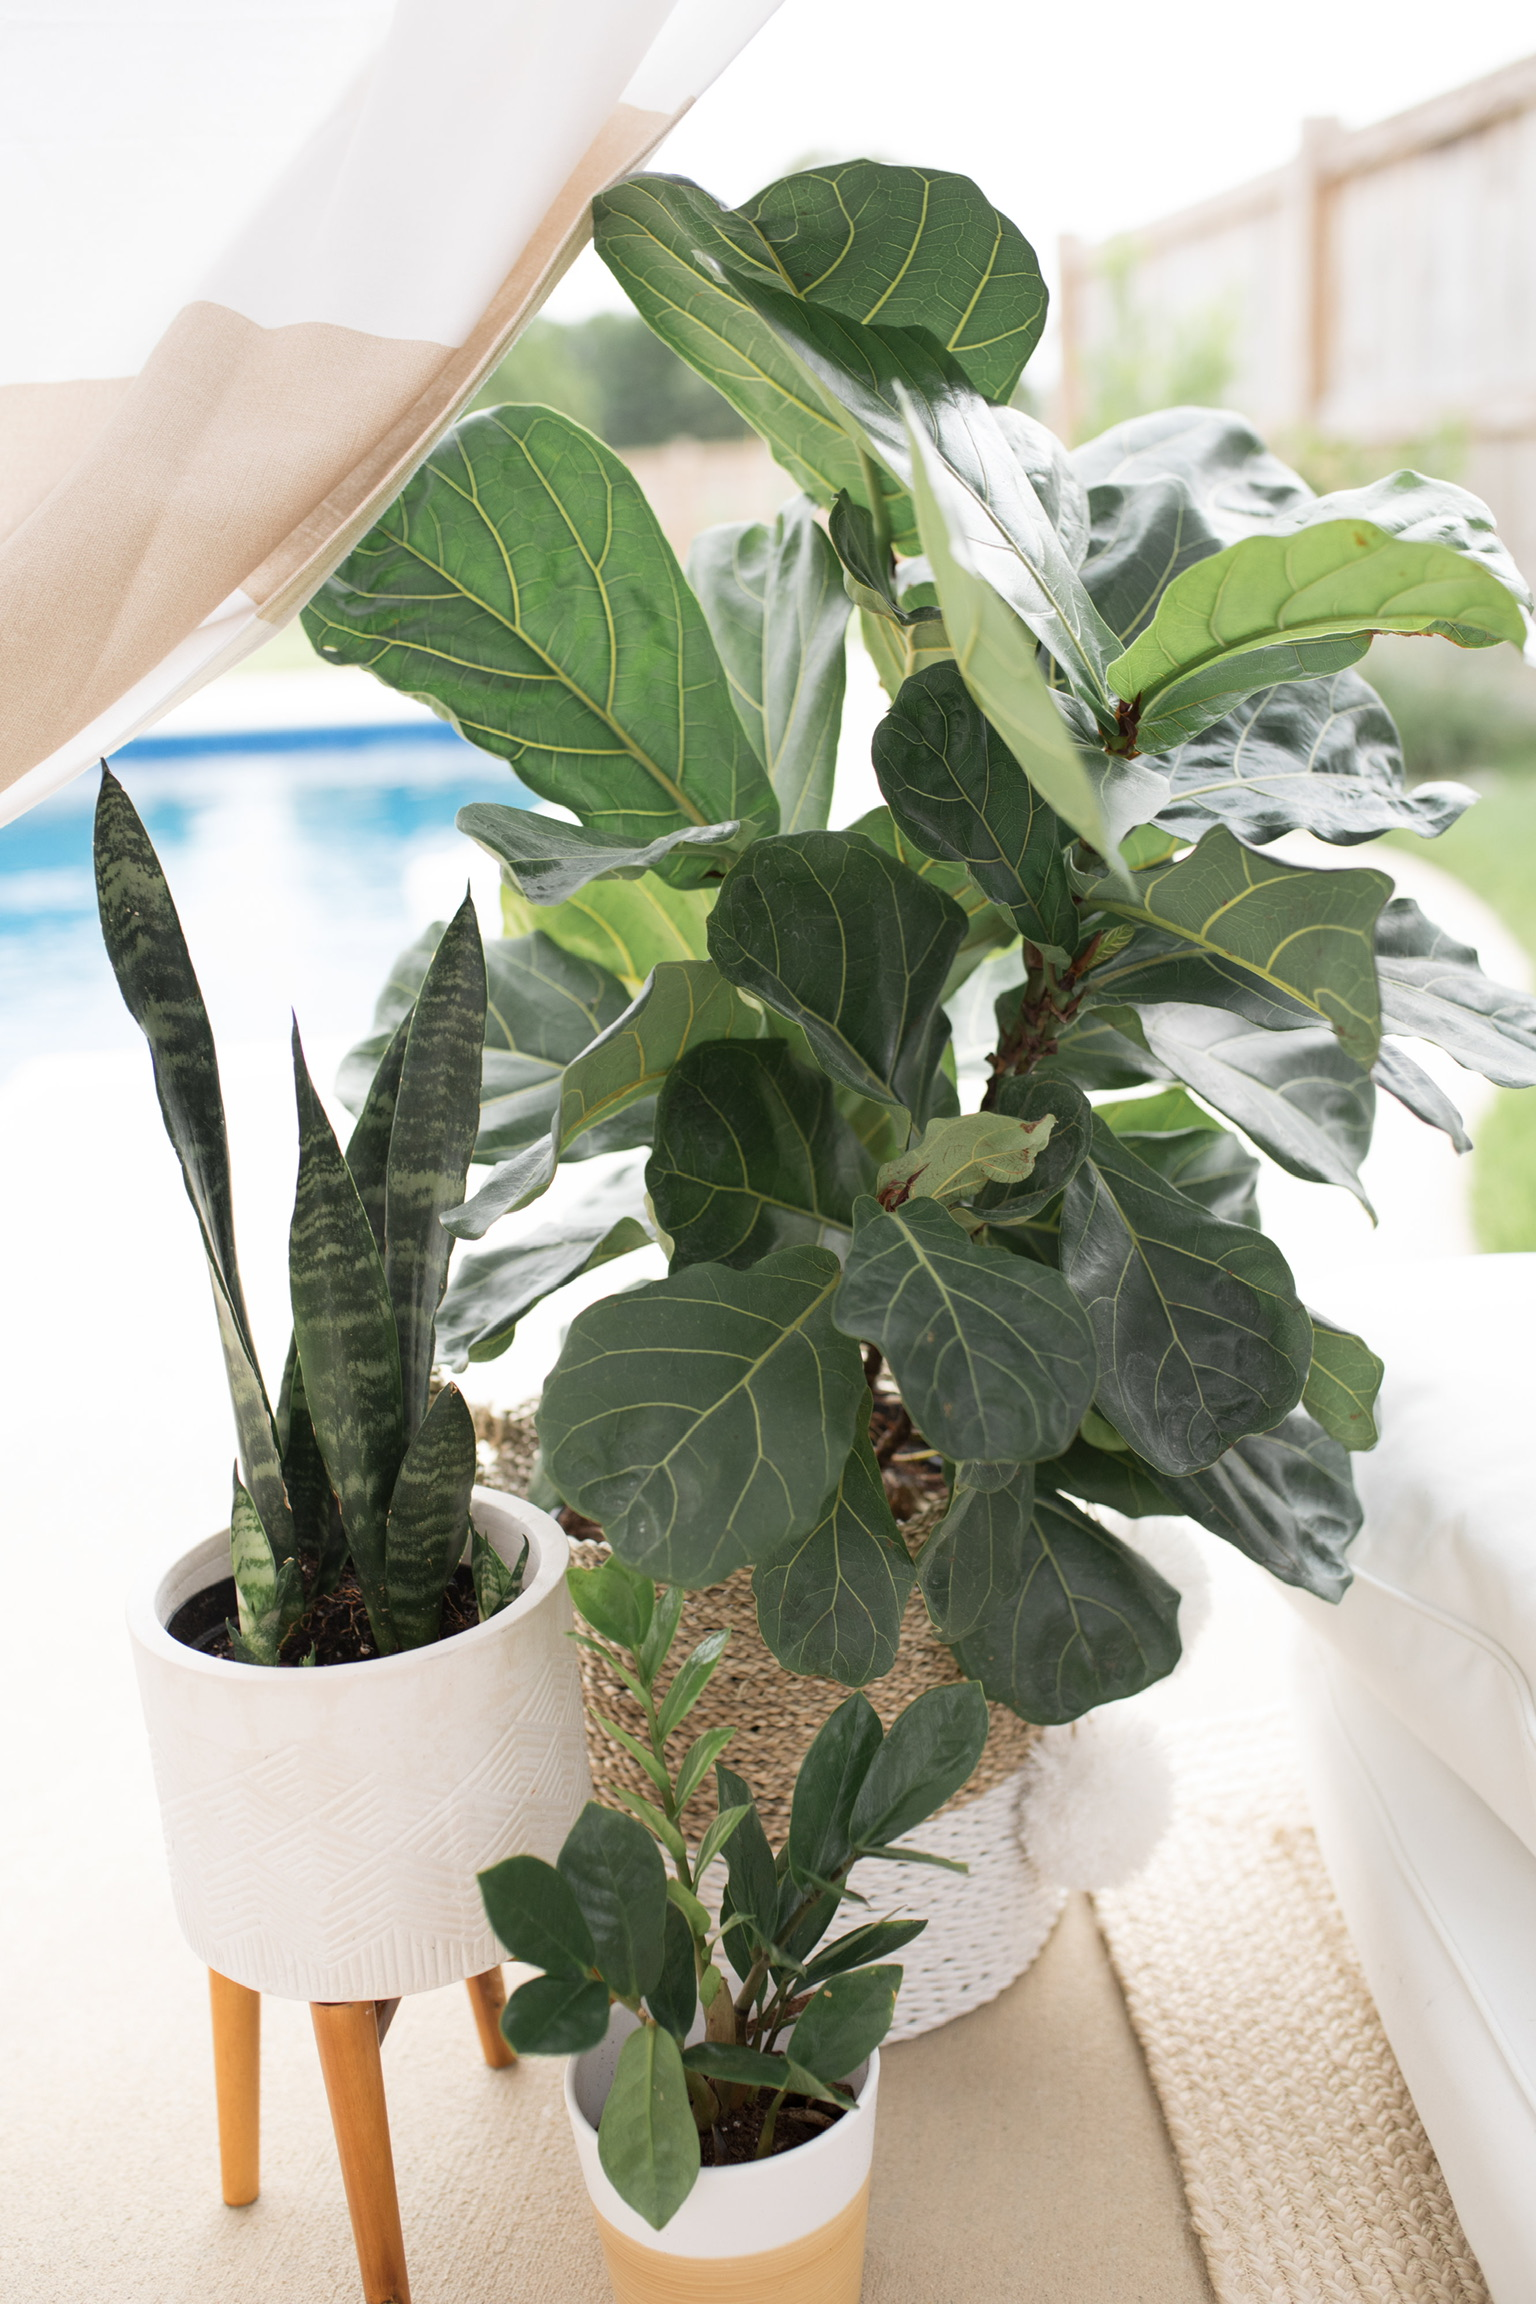 Plant containers make a home fashion statement.